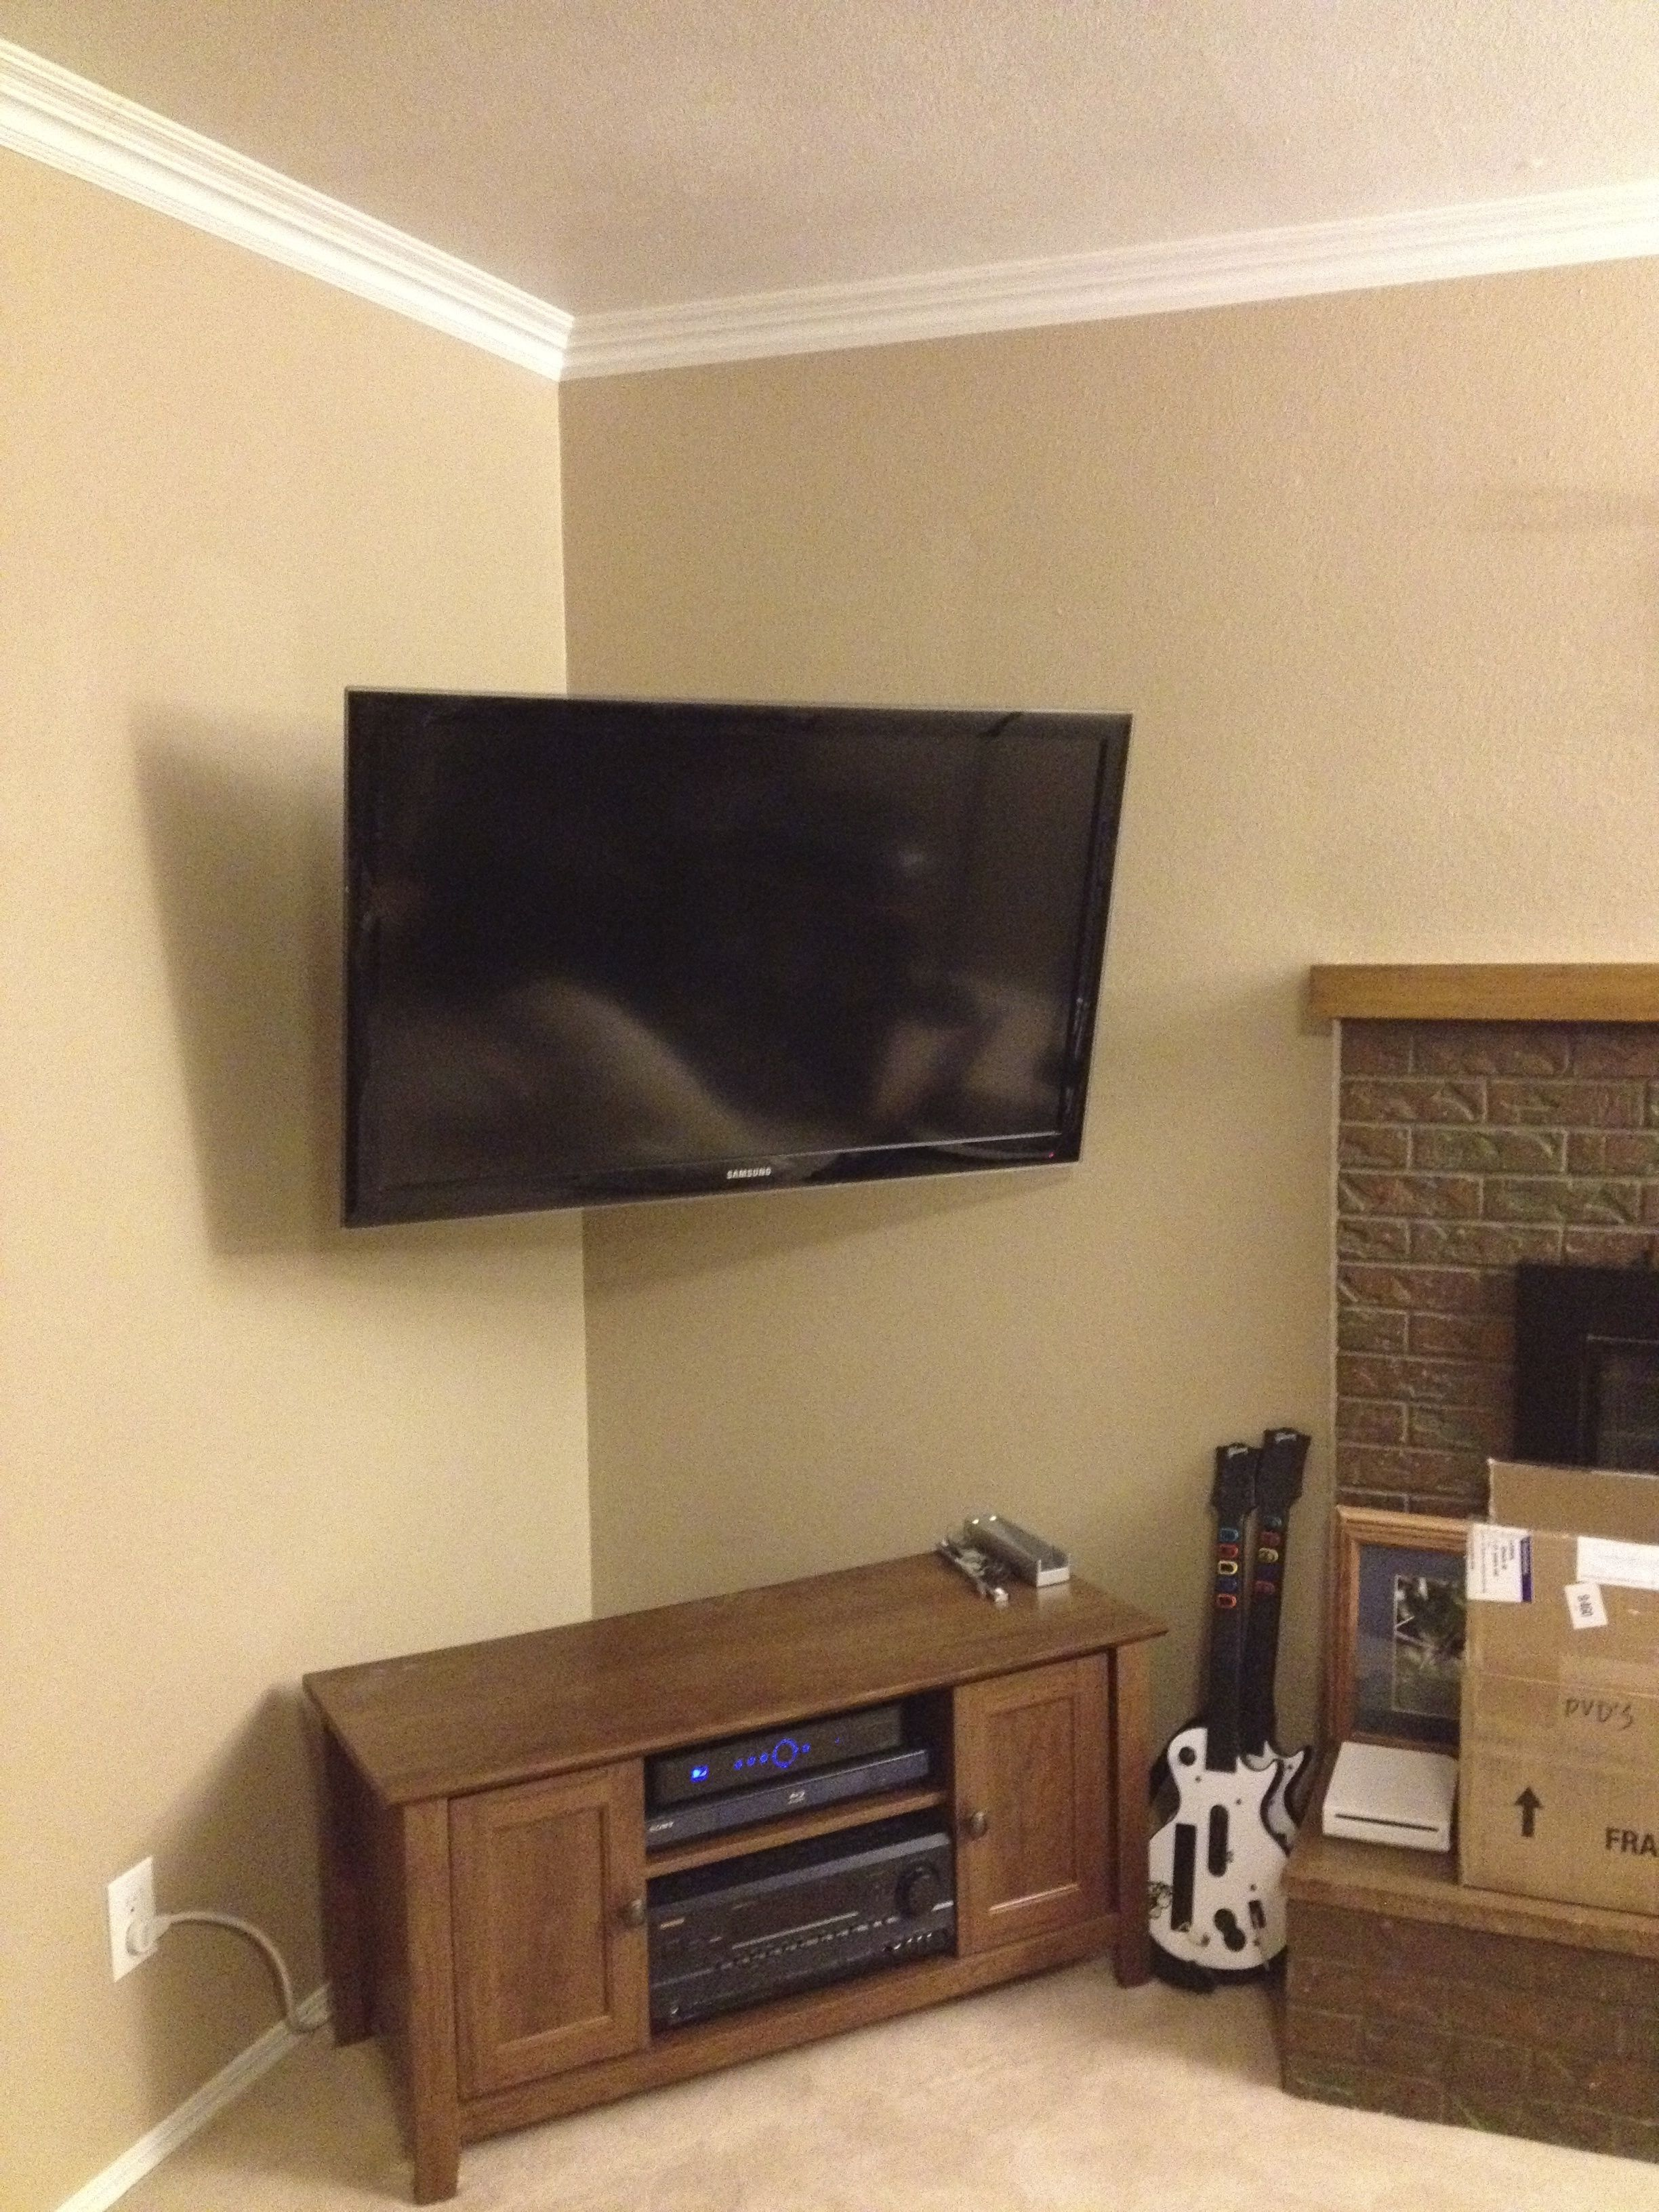 Corner Mounted Tv With The Wires Hidden Adds So Much E In Your Bedroom And Gives